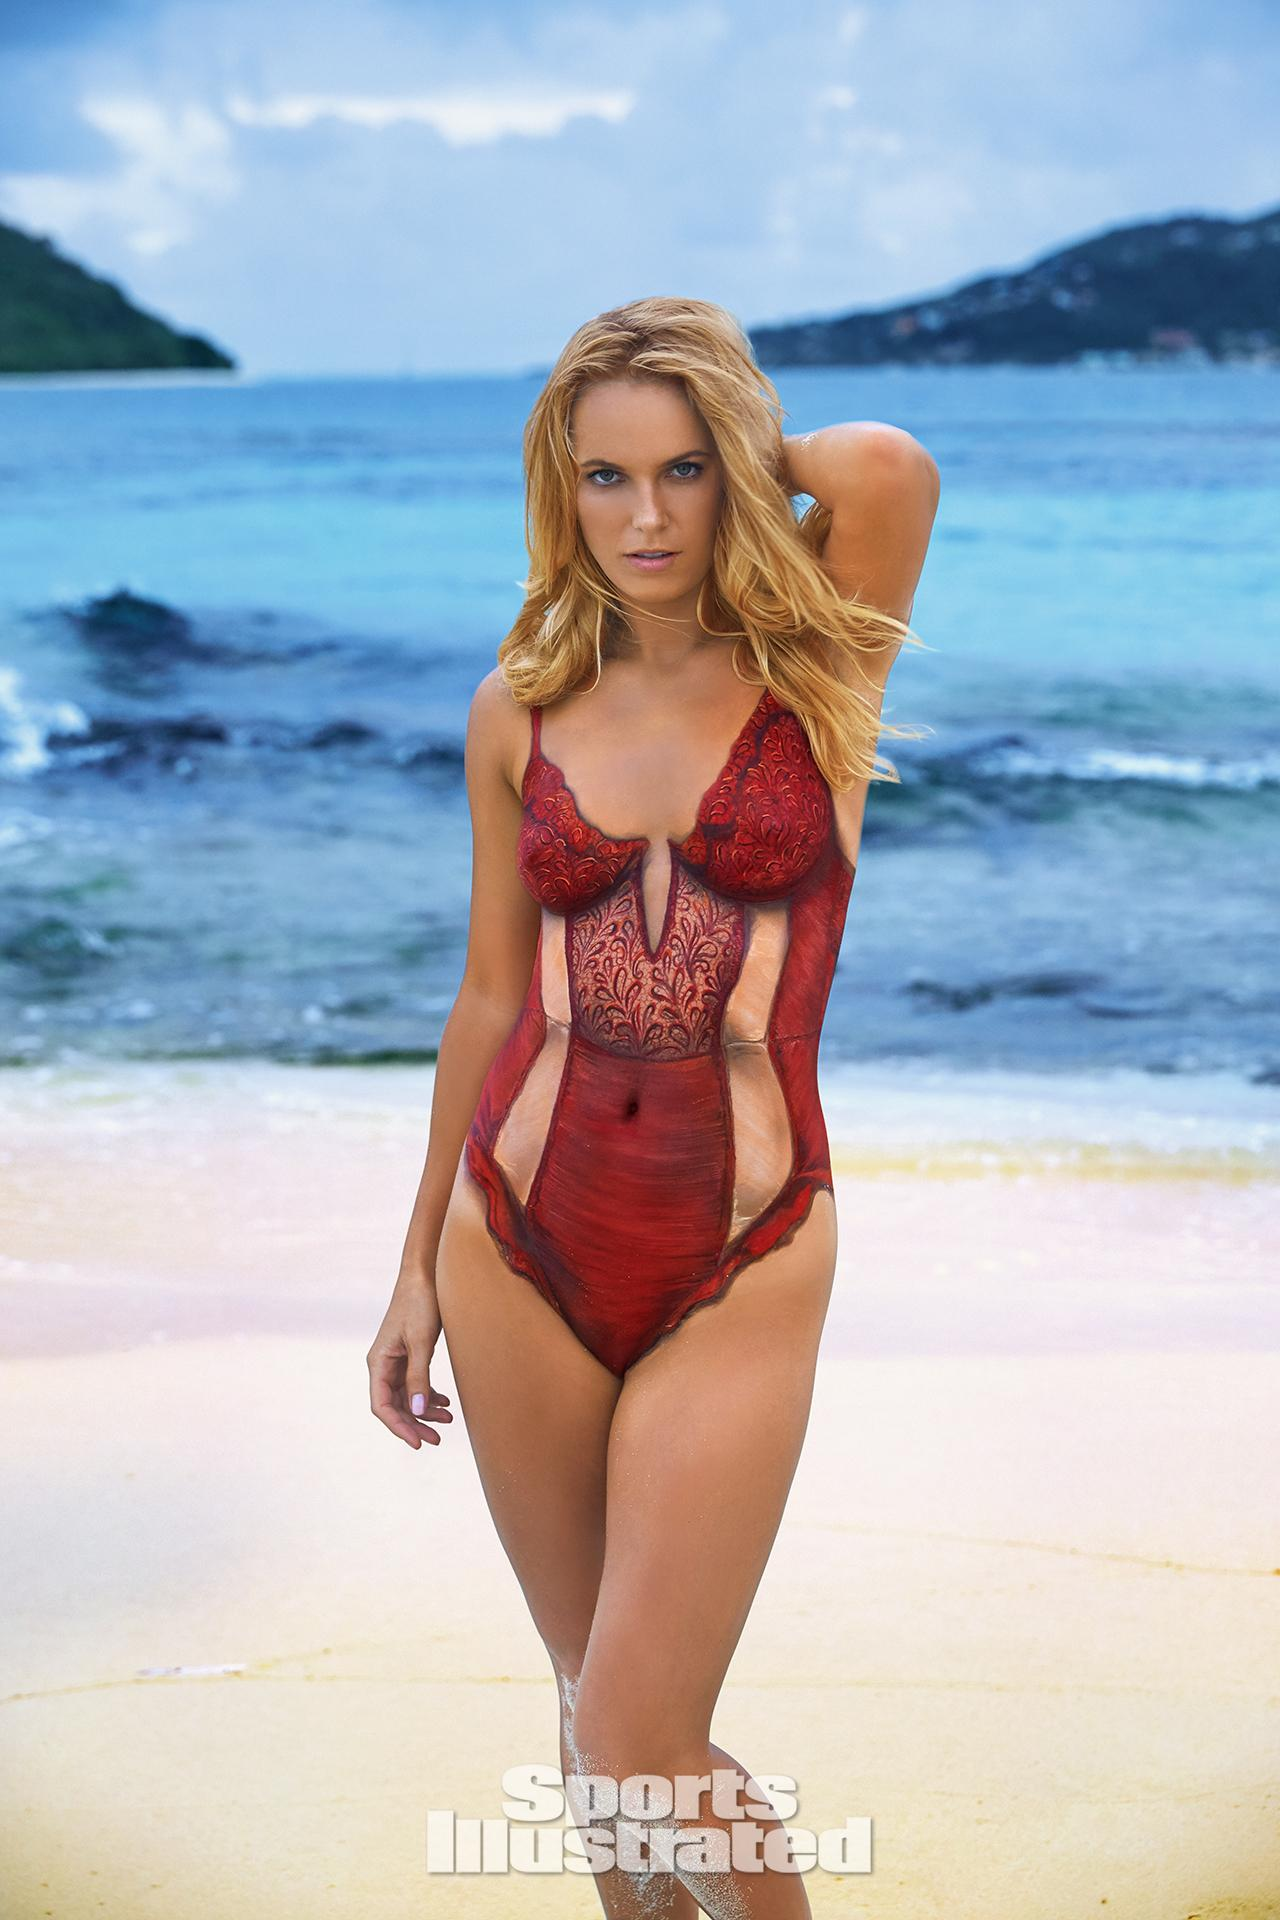 caroline wozniacki Caroline Wozniacki was photographed by Frederic Pinet in Petit St. Vincent. Swimsuit inspired by For Love And Lemons.